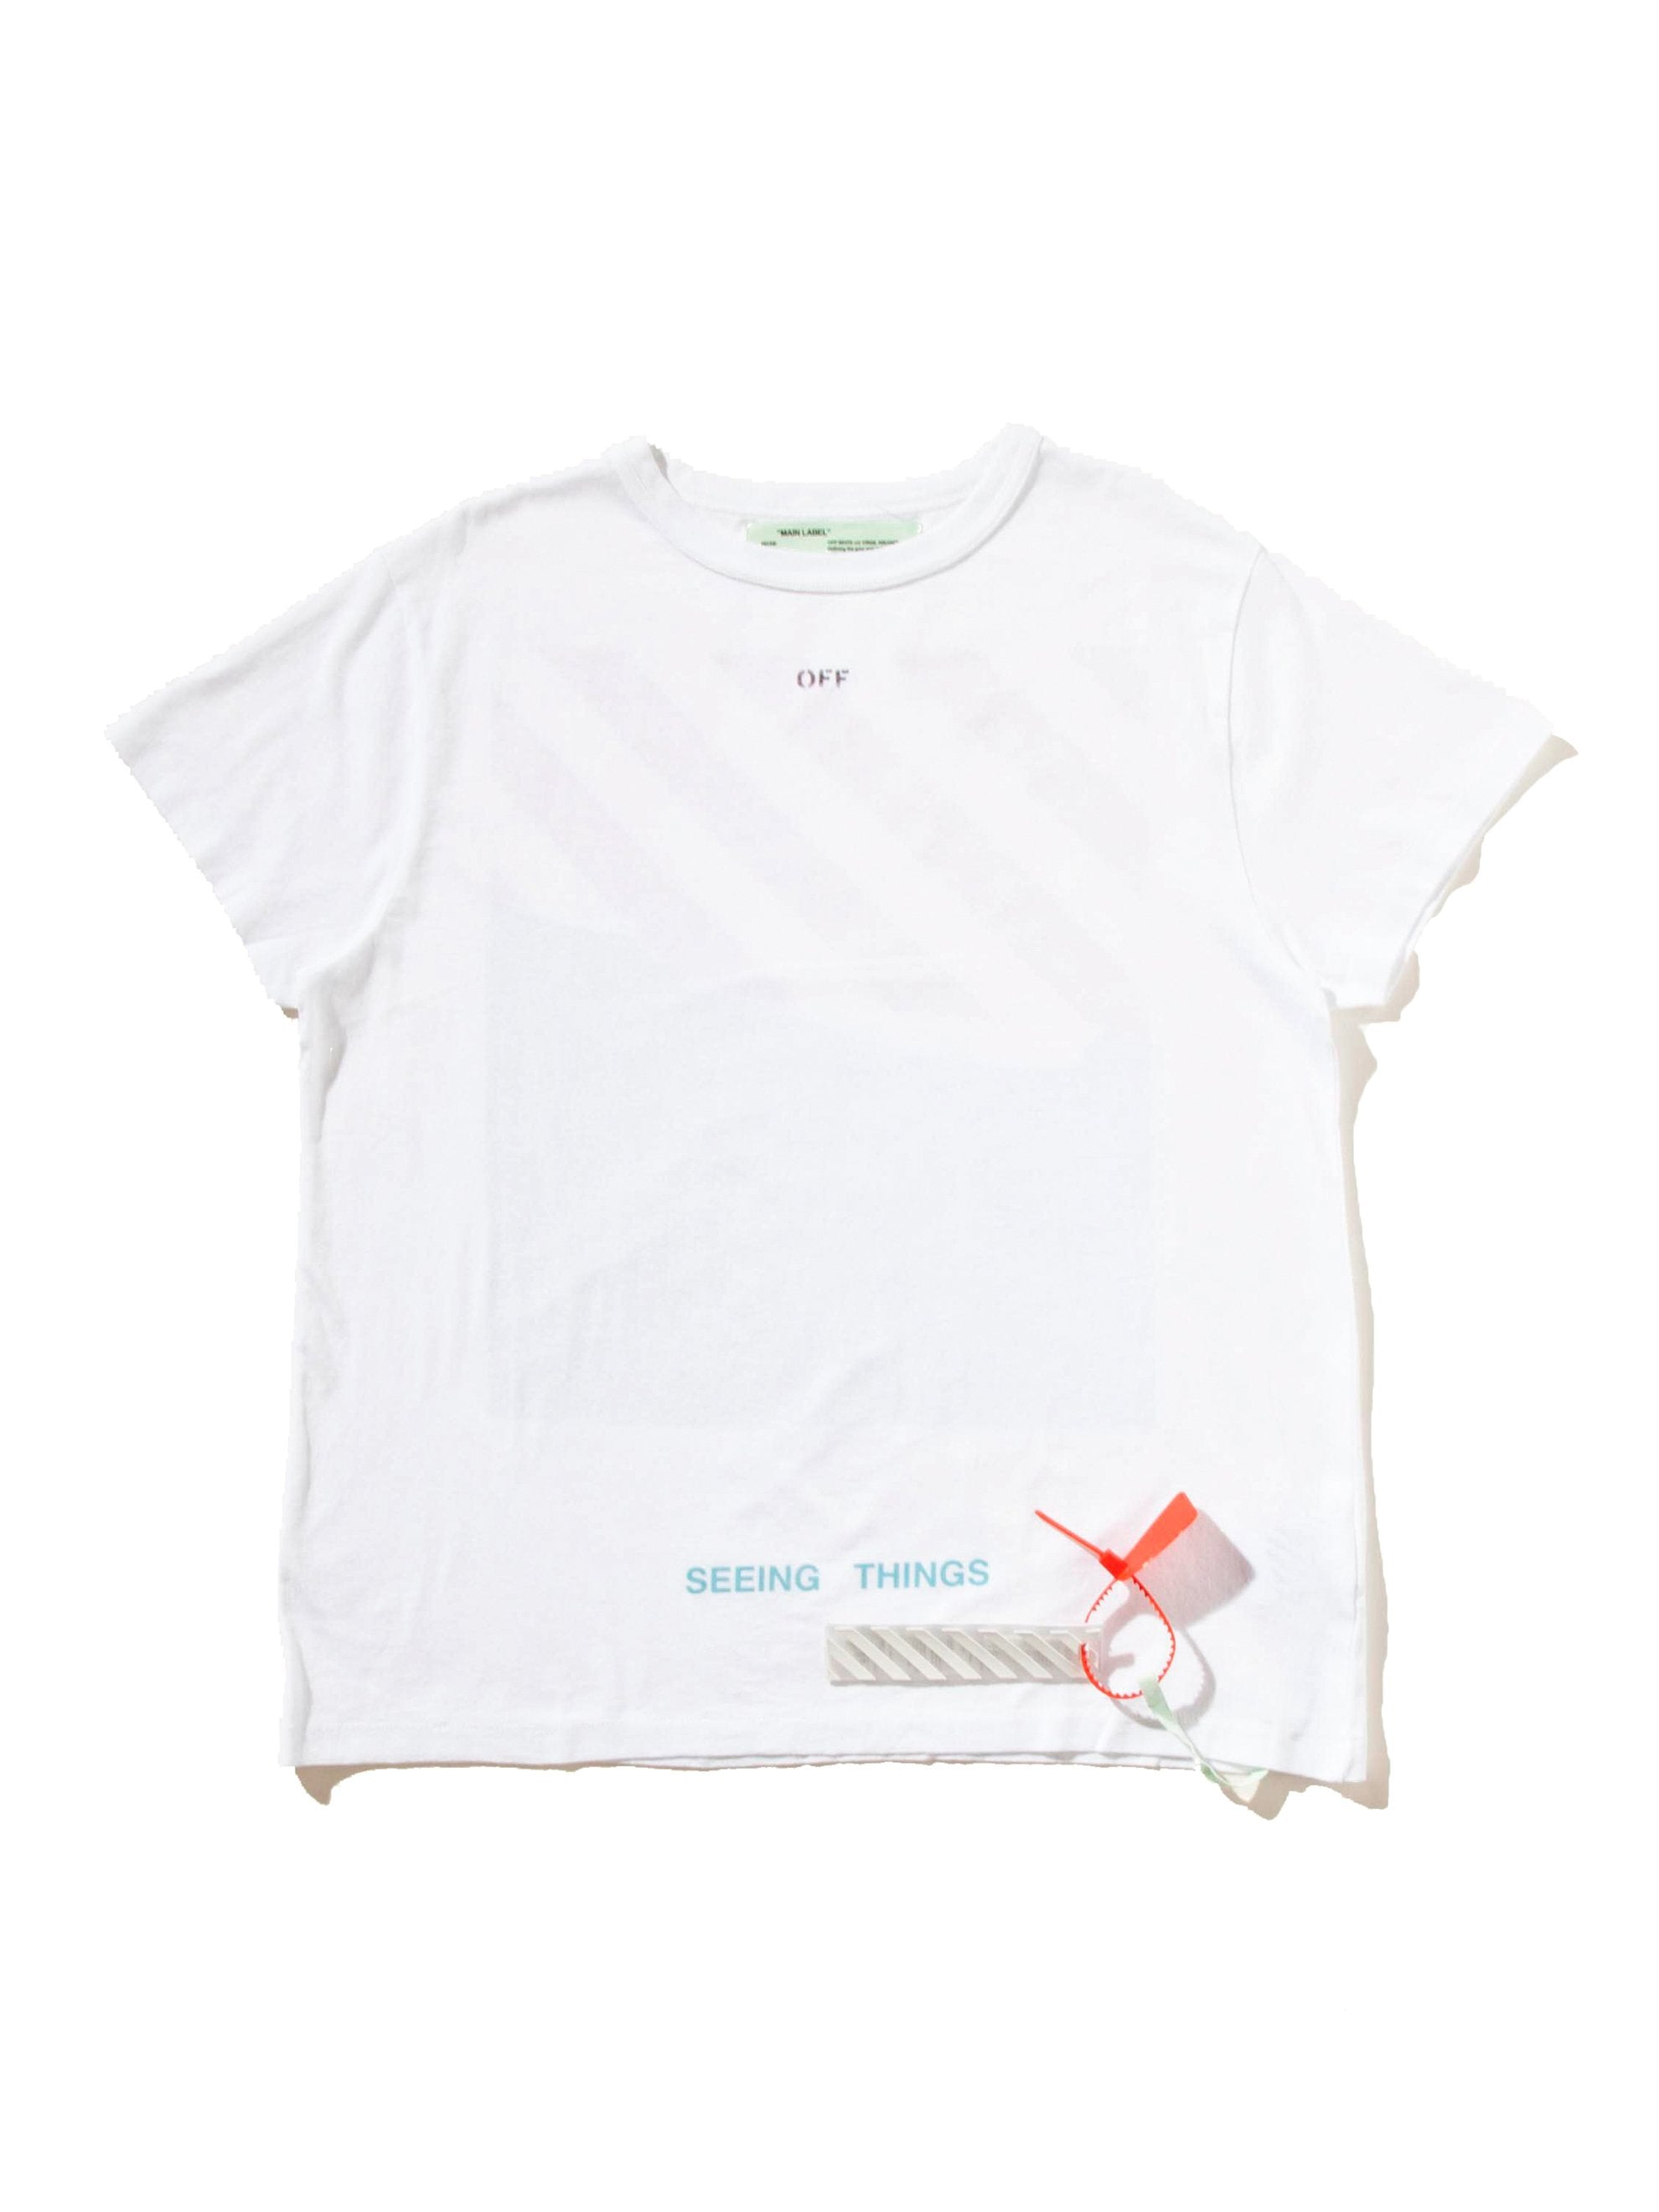 White Photocopy T-Shirt 4